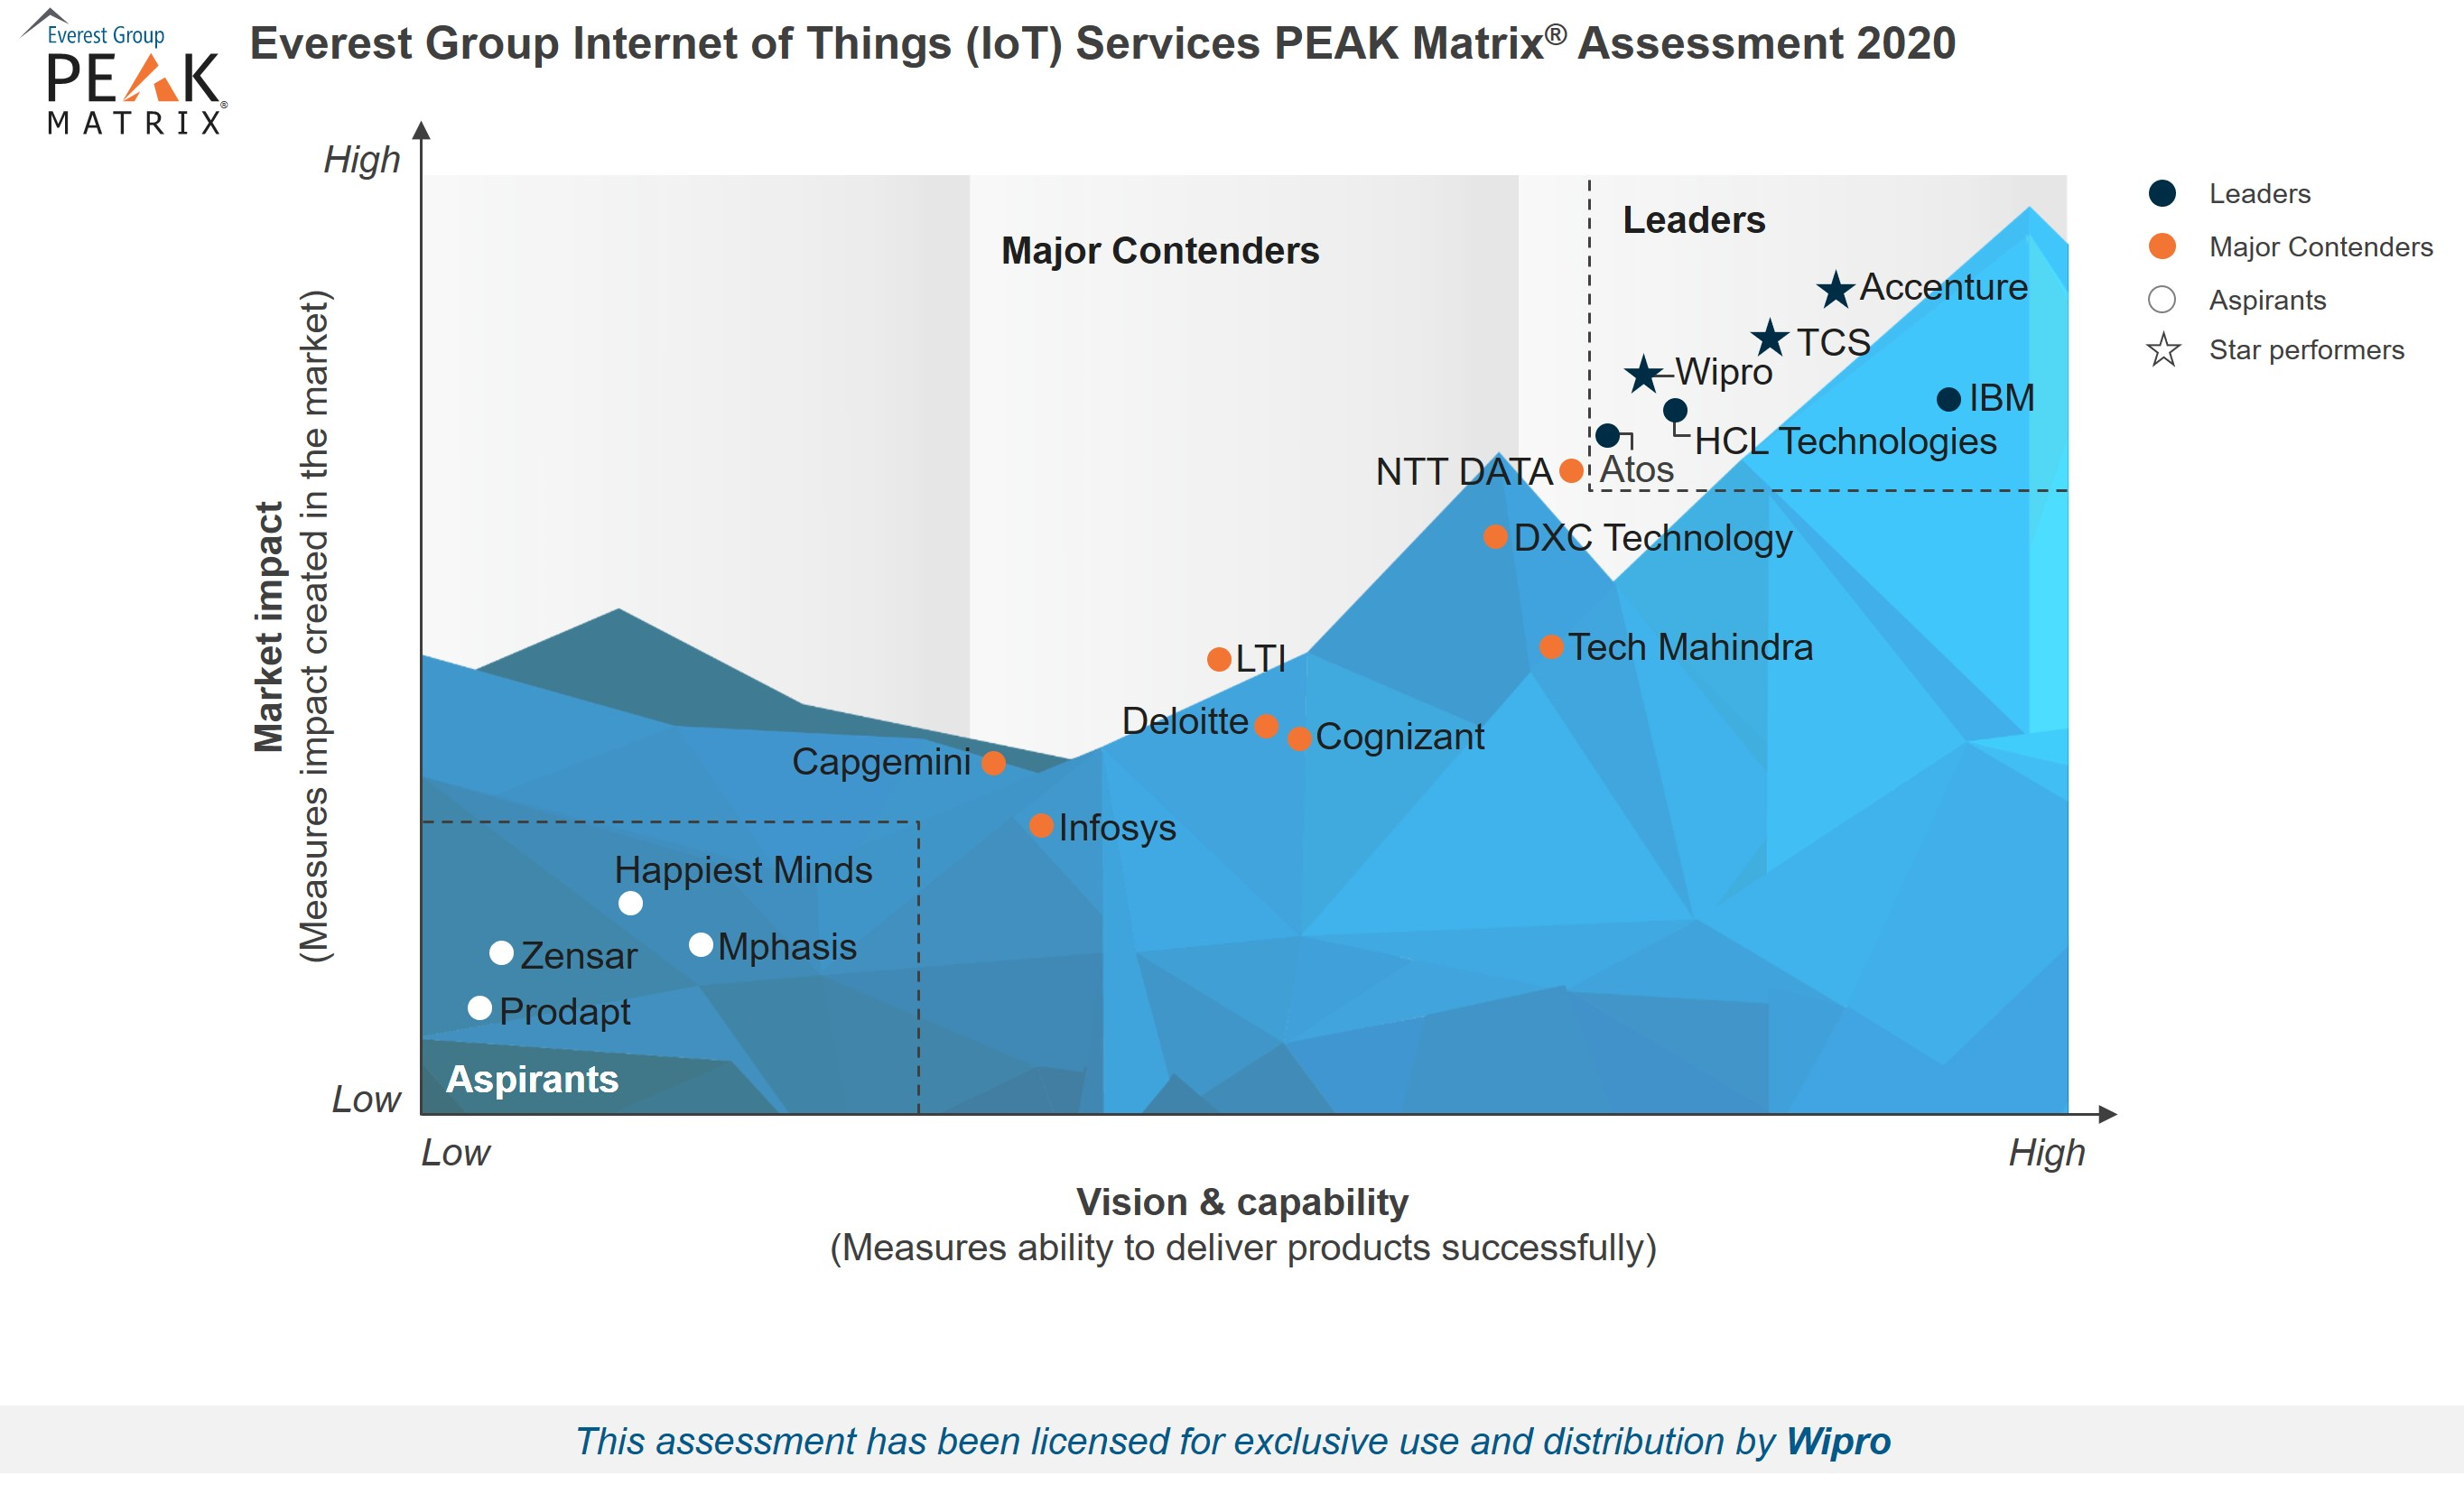 Wipro positioned as a Leader and Star Performer in Internet of Things (IoT) Services PEAK Matrix® Assessment 2020